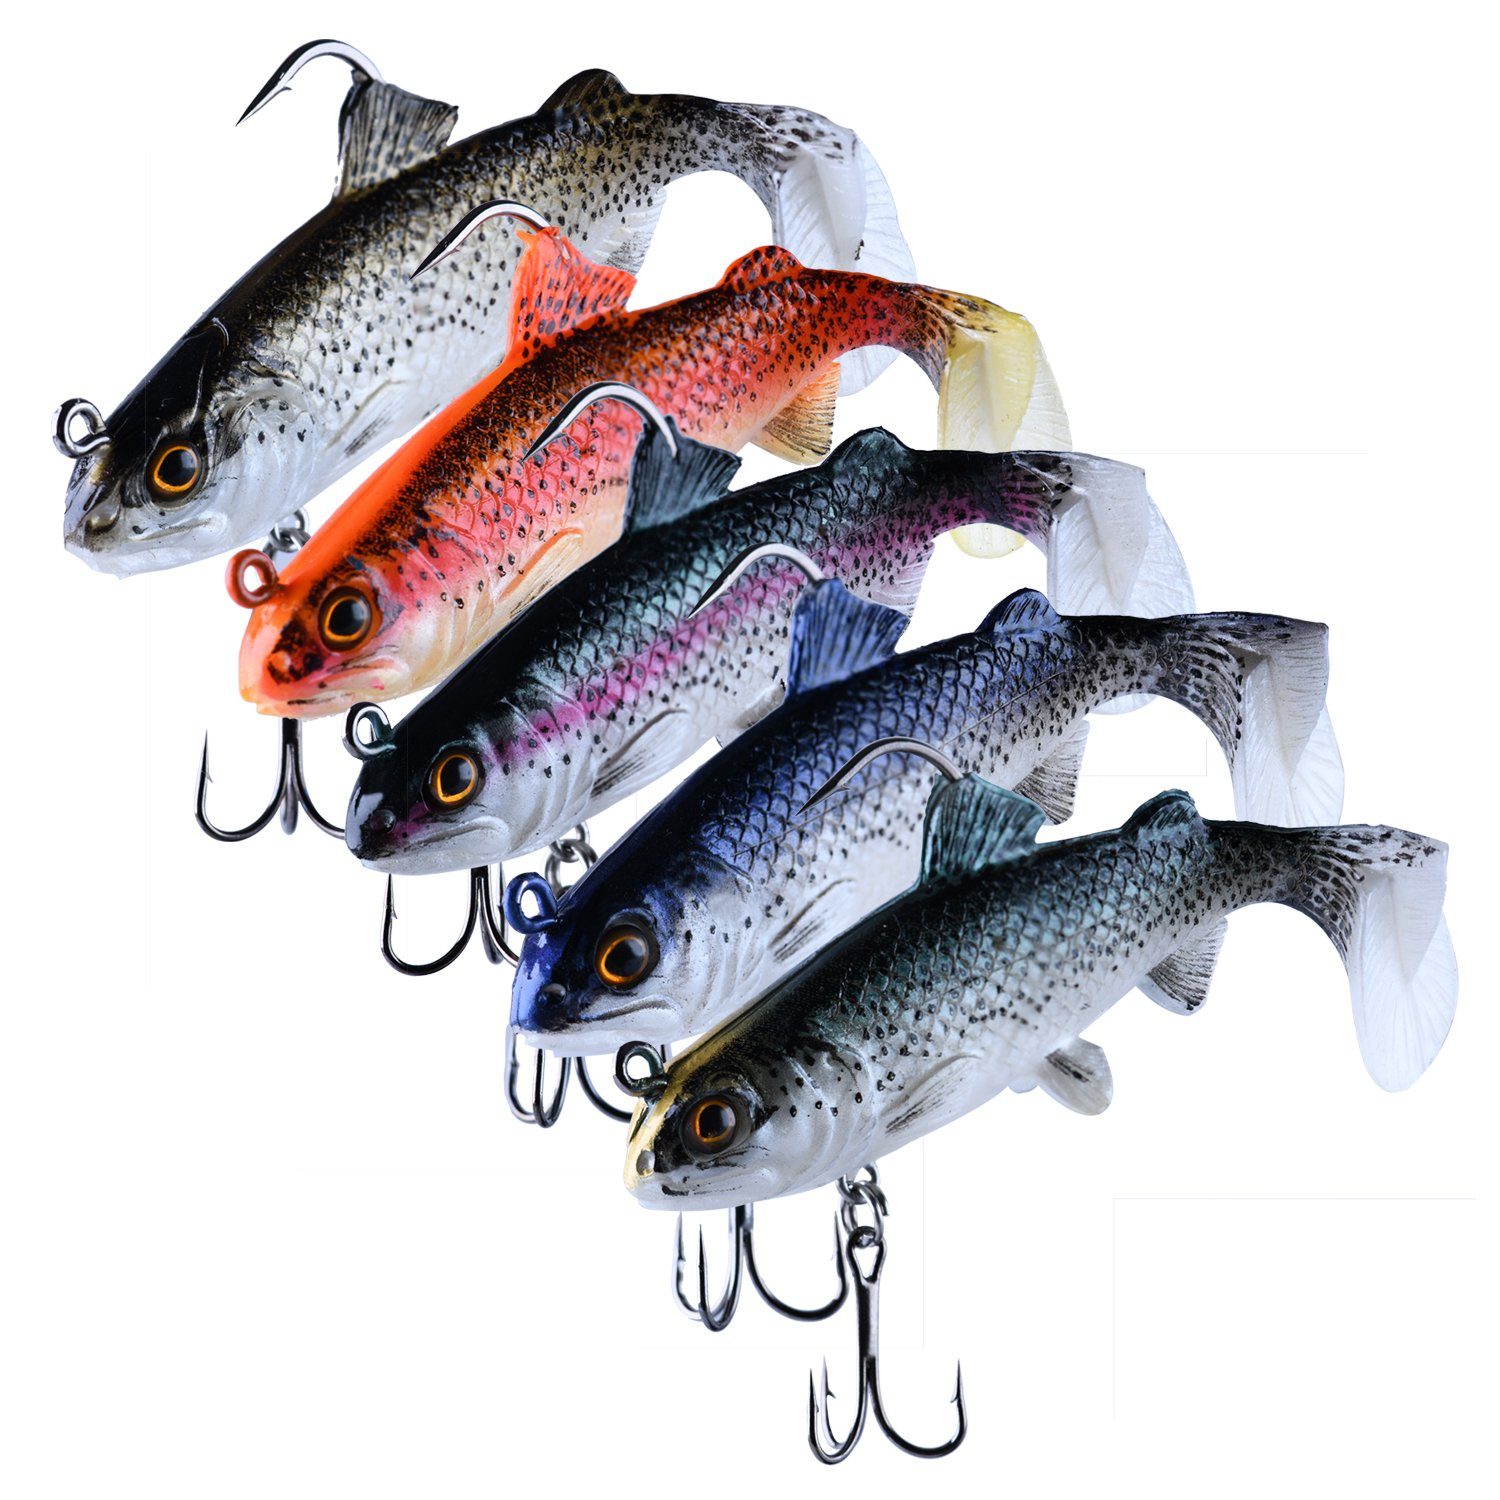 The best lures yet